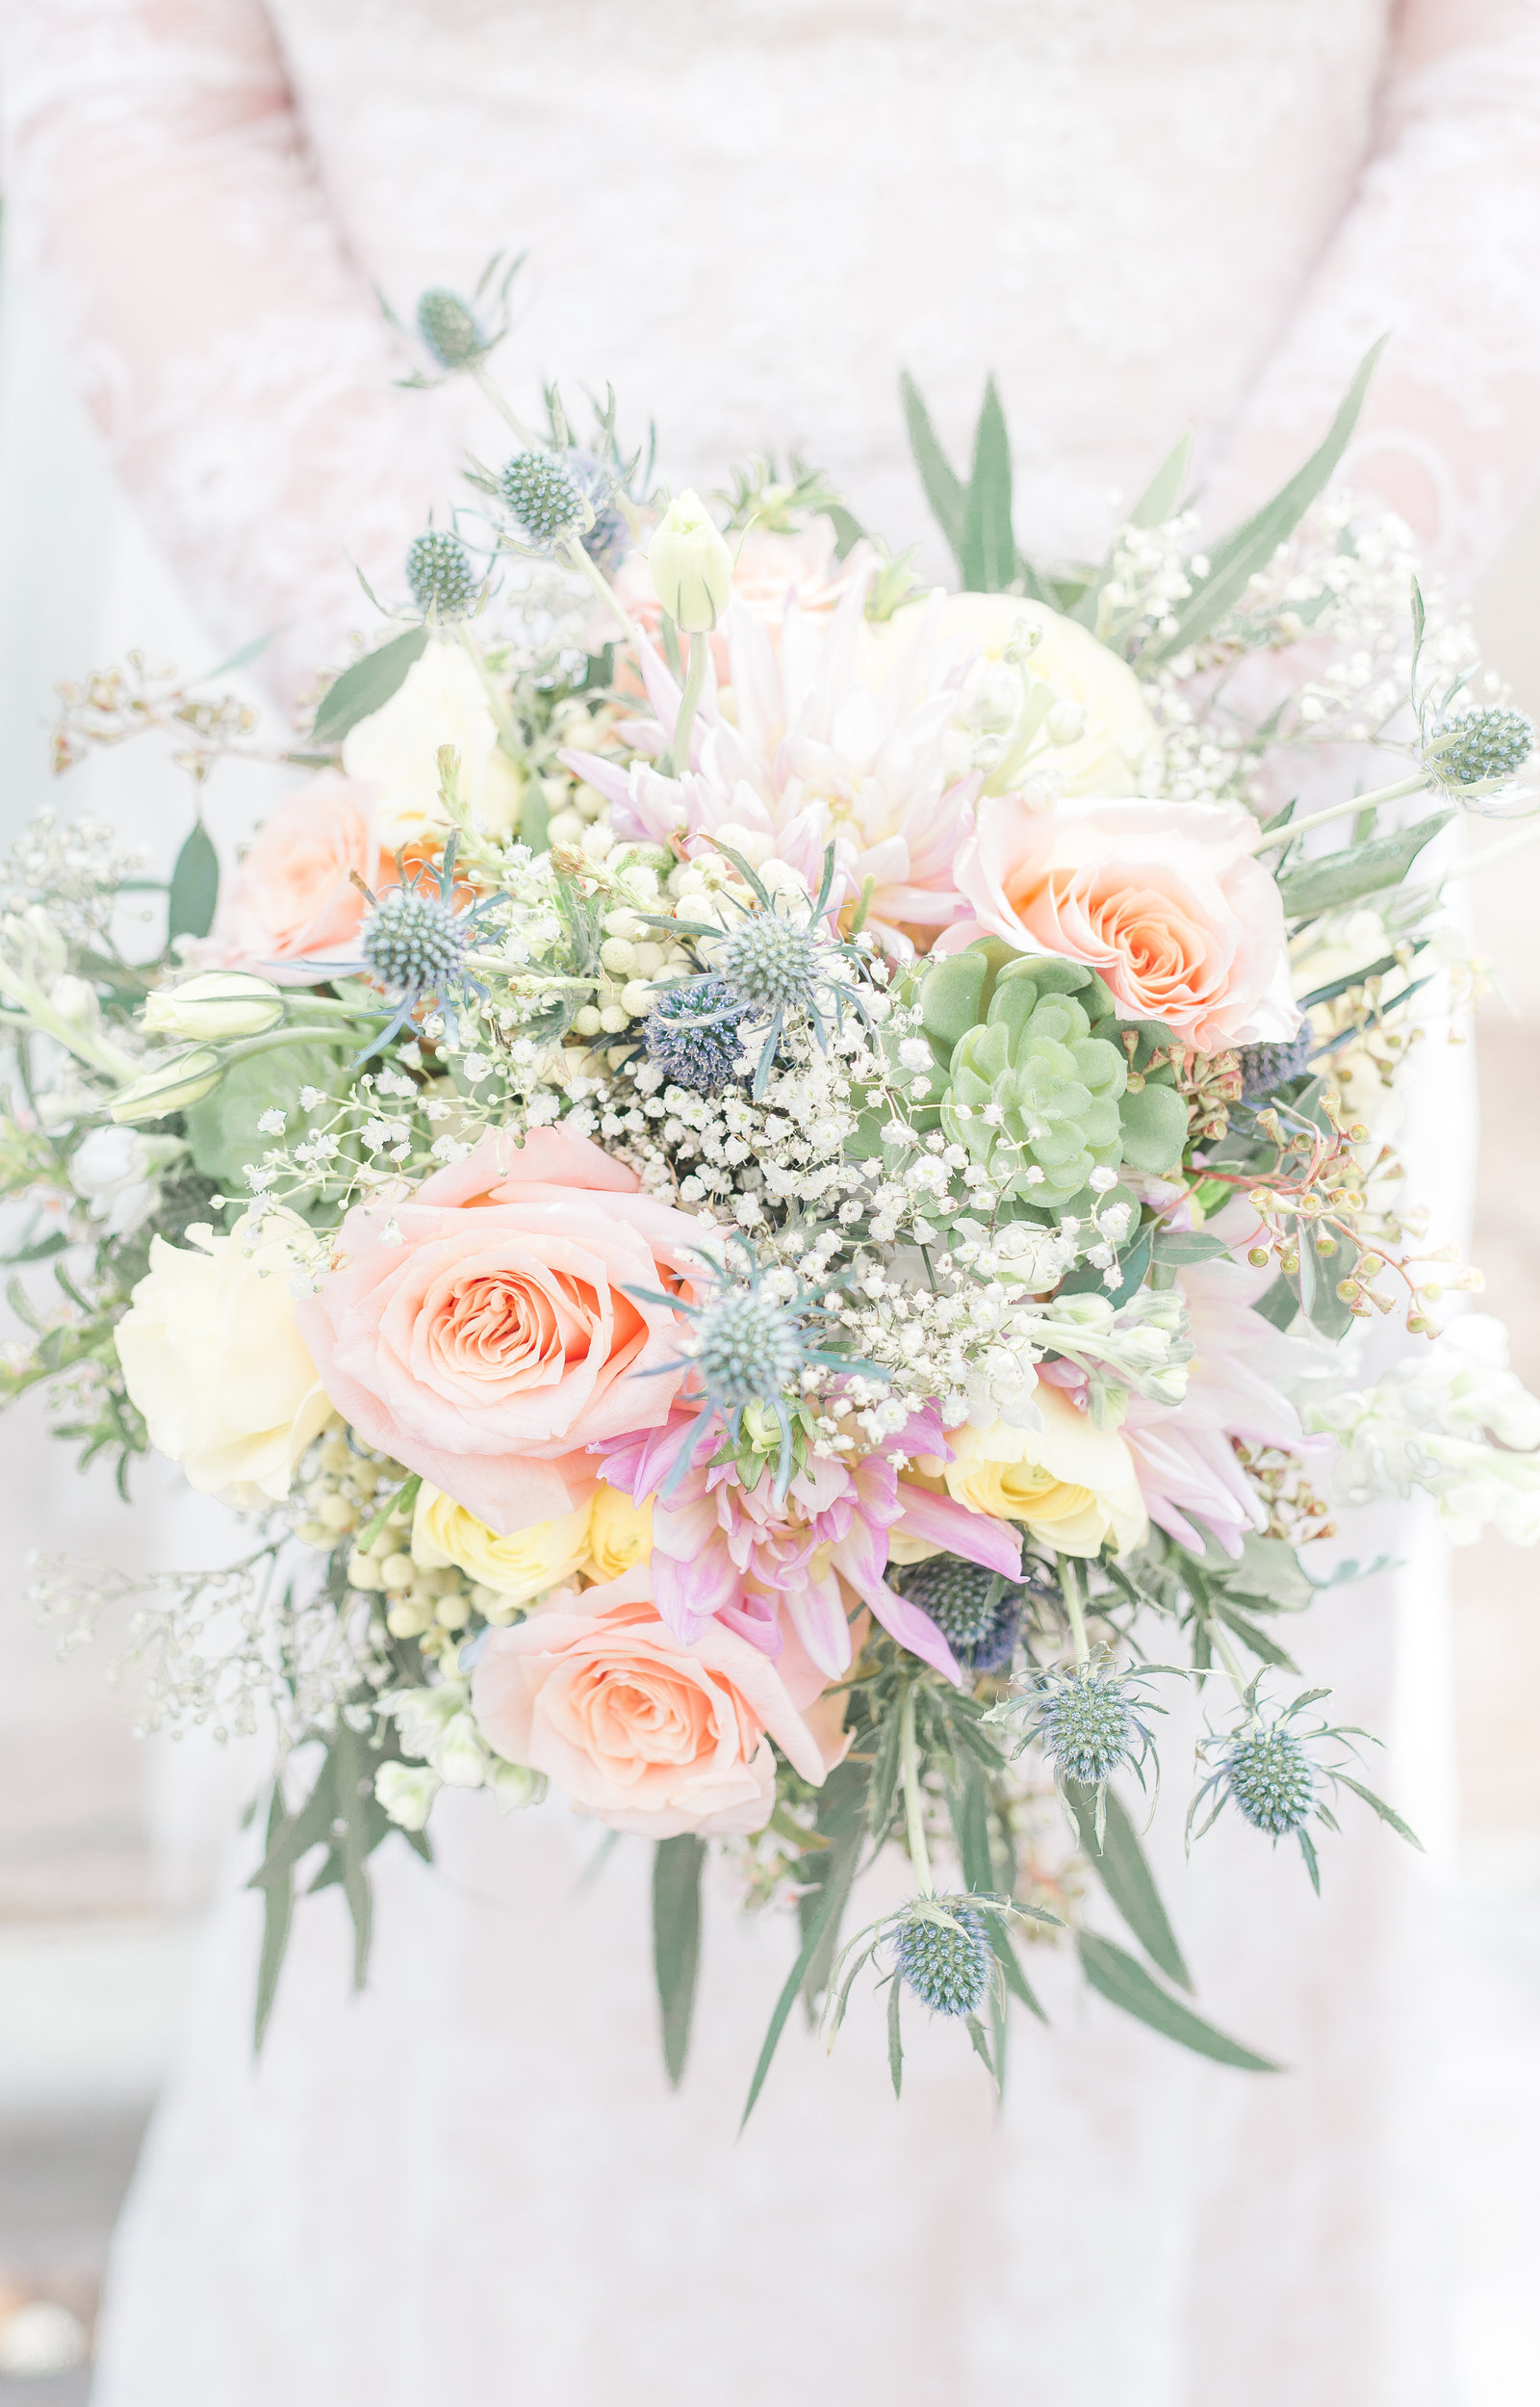 Gorgeous wedding bouquet photography